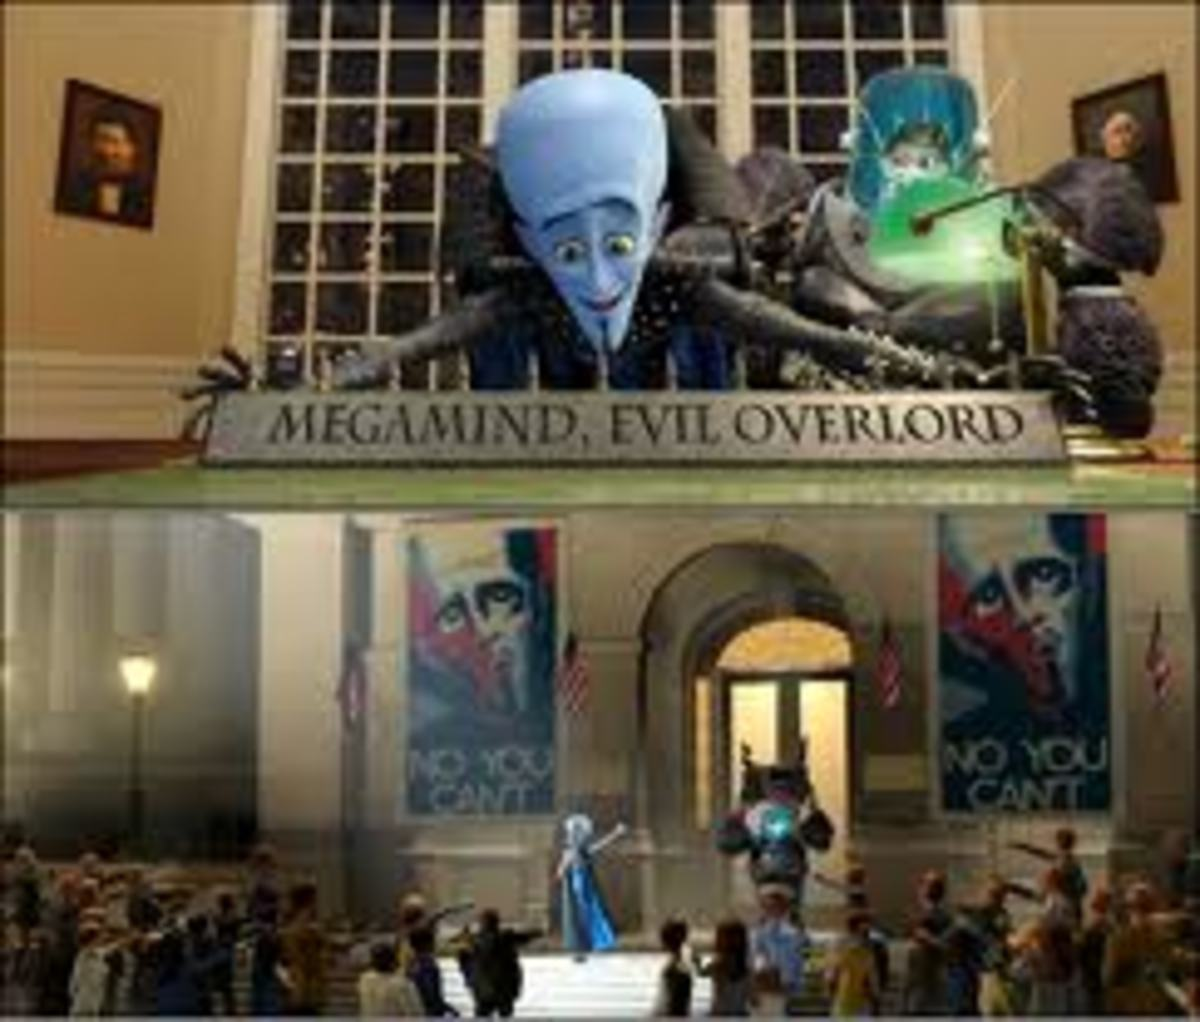 Having gained control Megamind acts like a child and takes everything he wants.